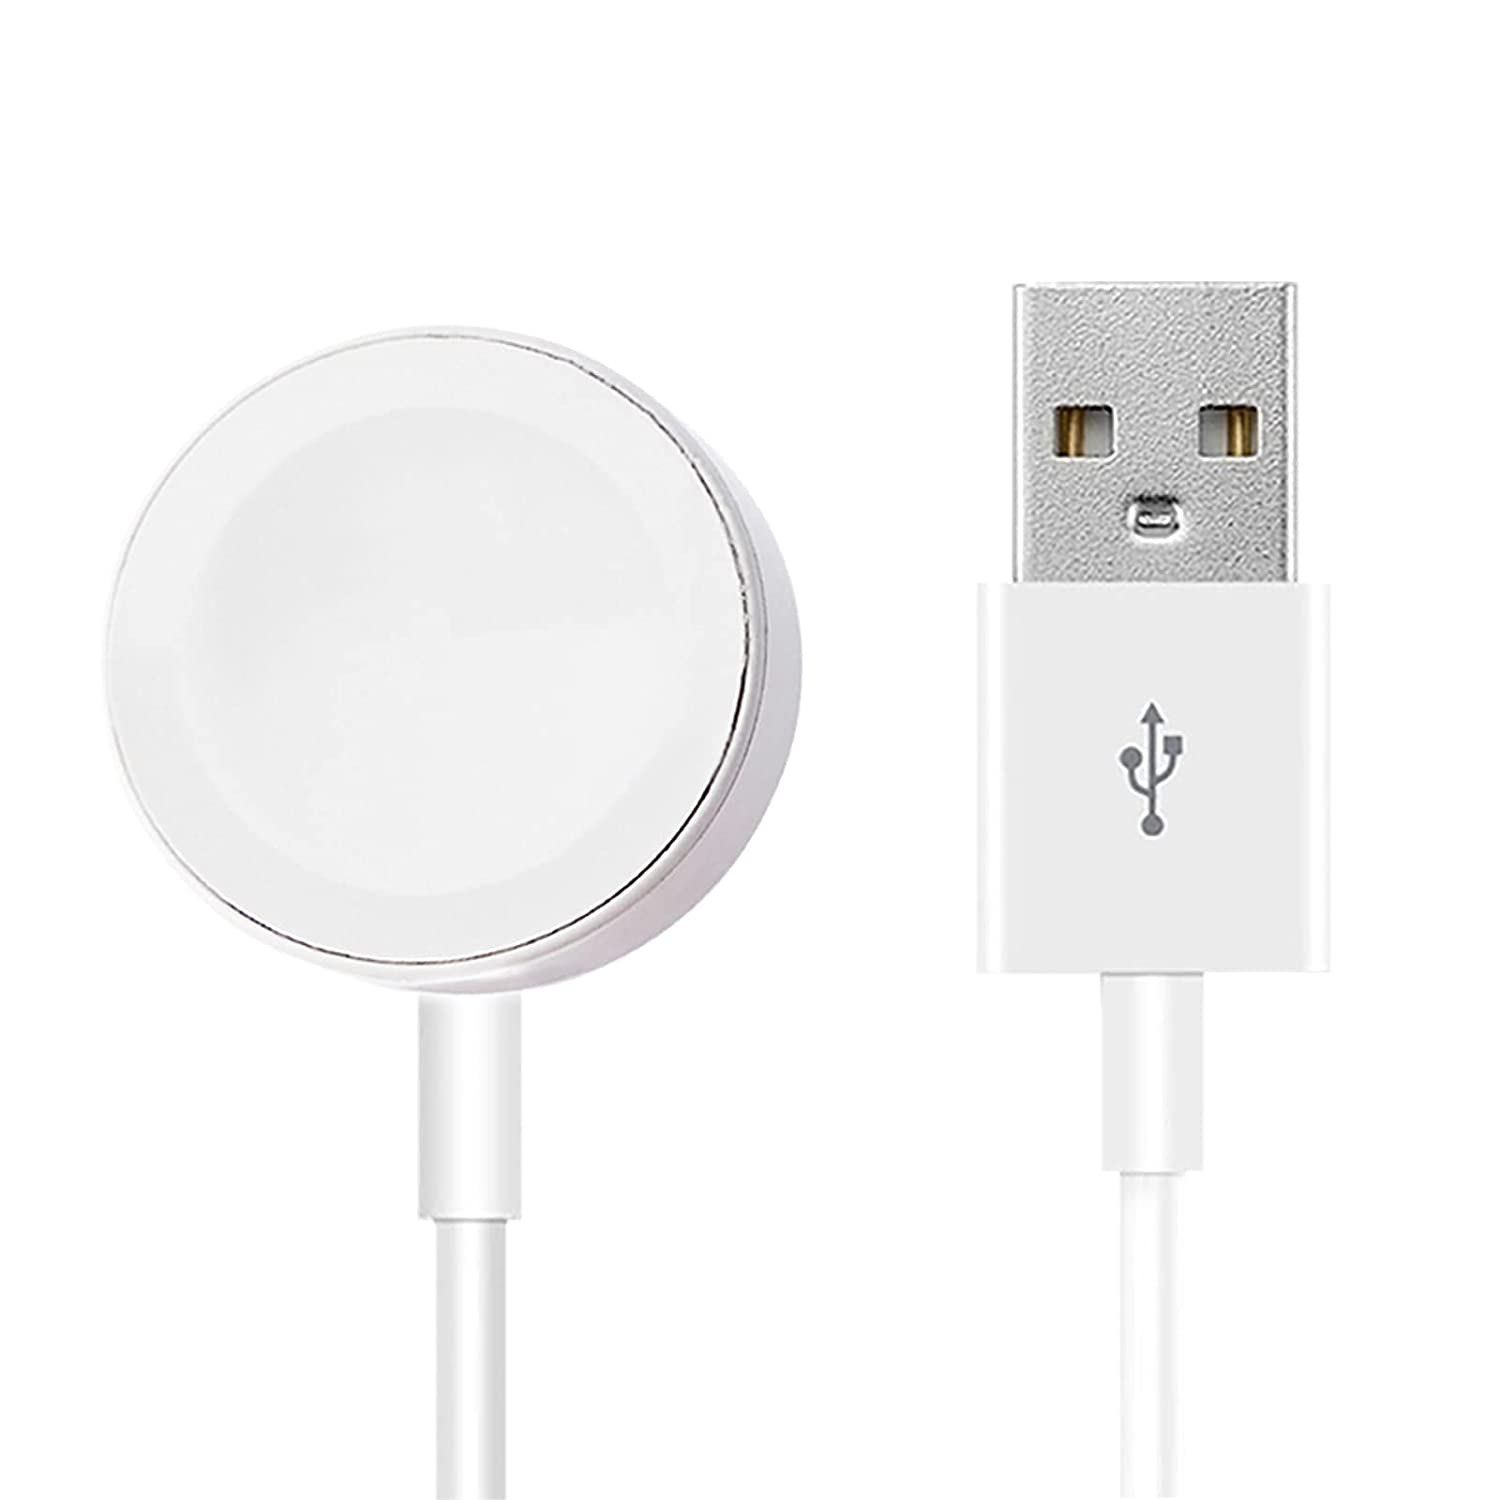 Watch Charger, Magnetic Charging Cable Cord,Portable Wireless Fast Magnetic Charging Cable Cord Compatible with Apple Watch Series 6/5/4/3/2/1/SE